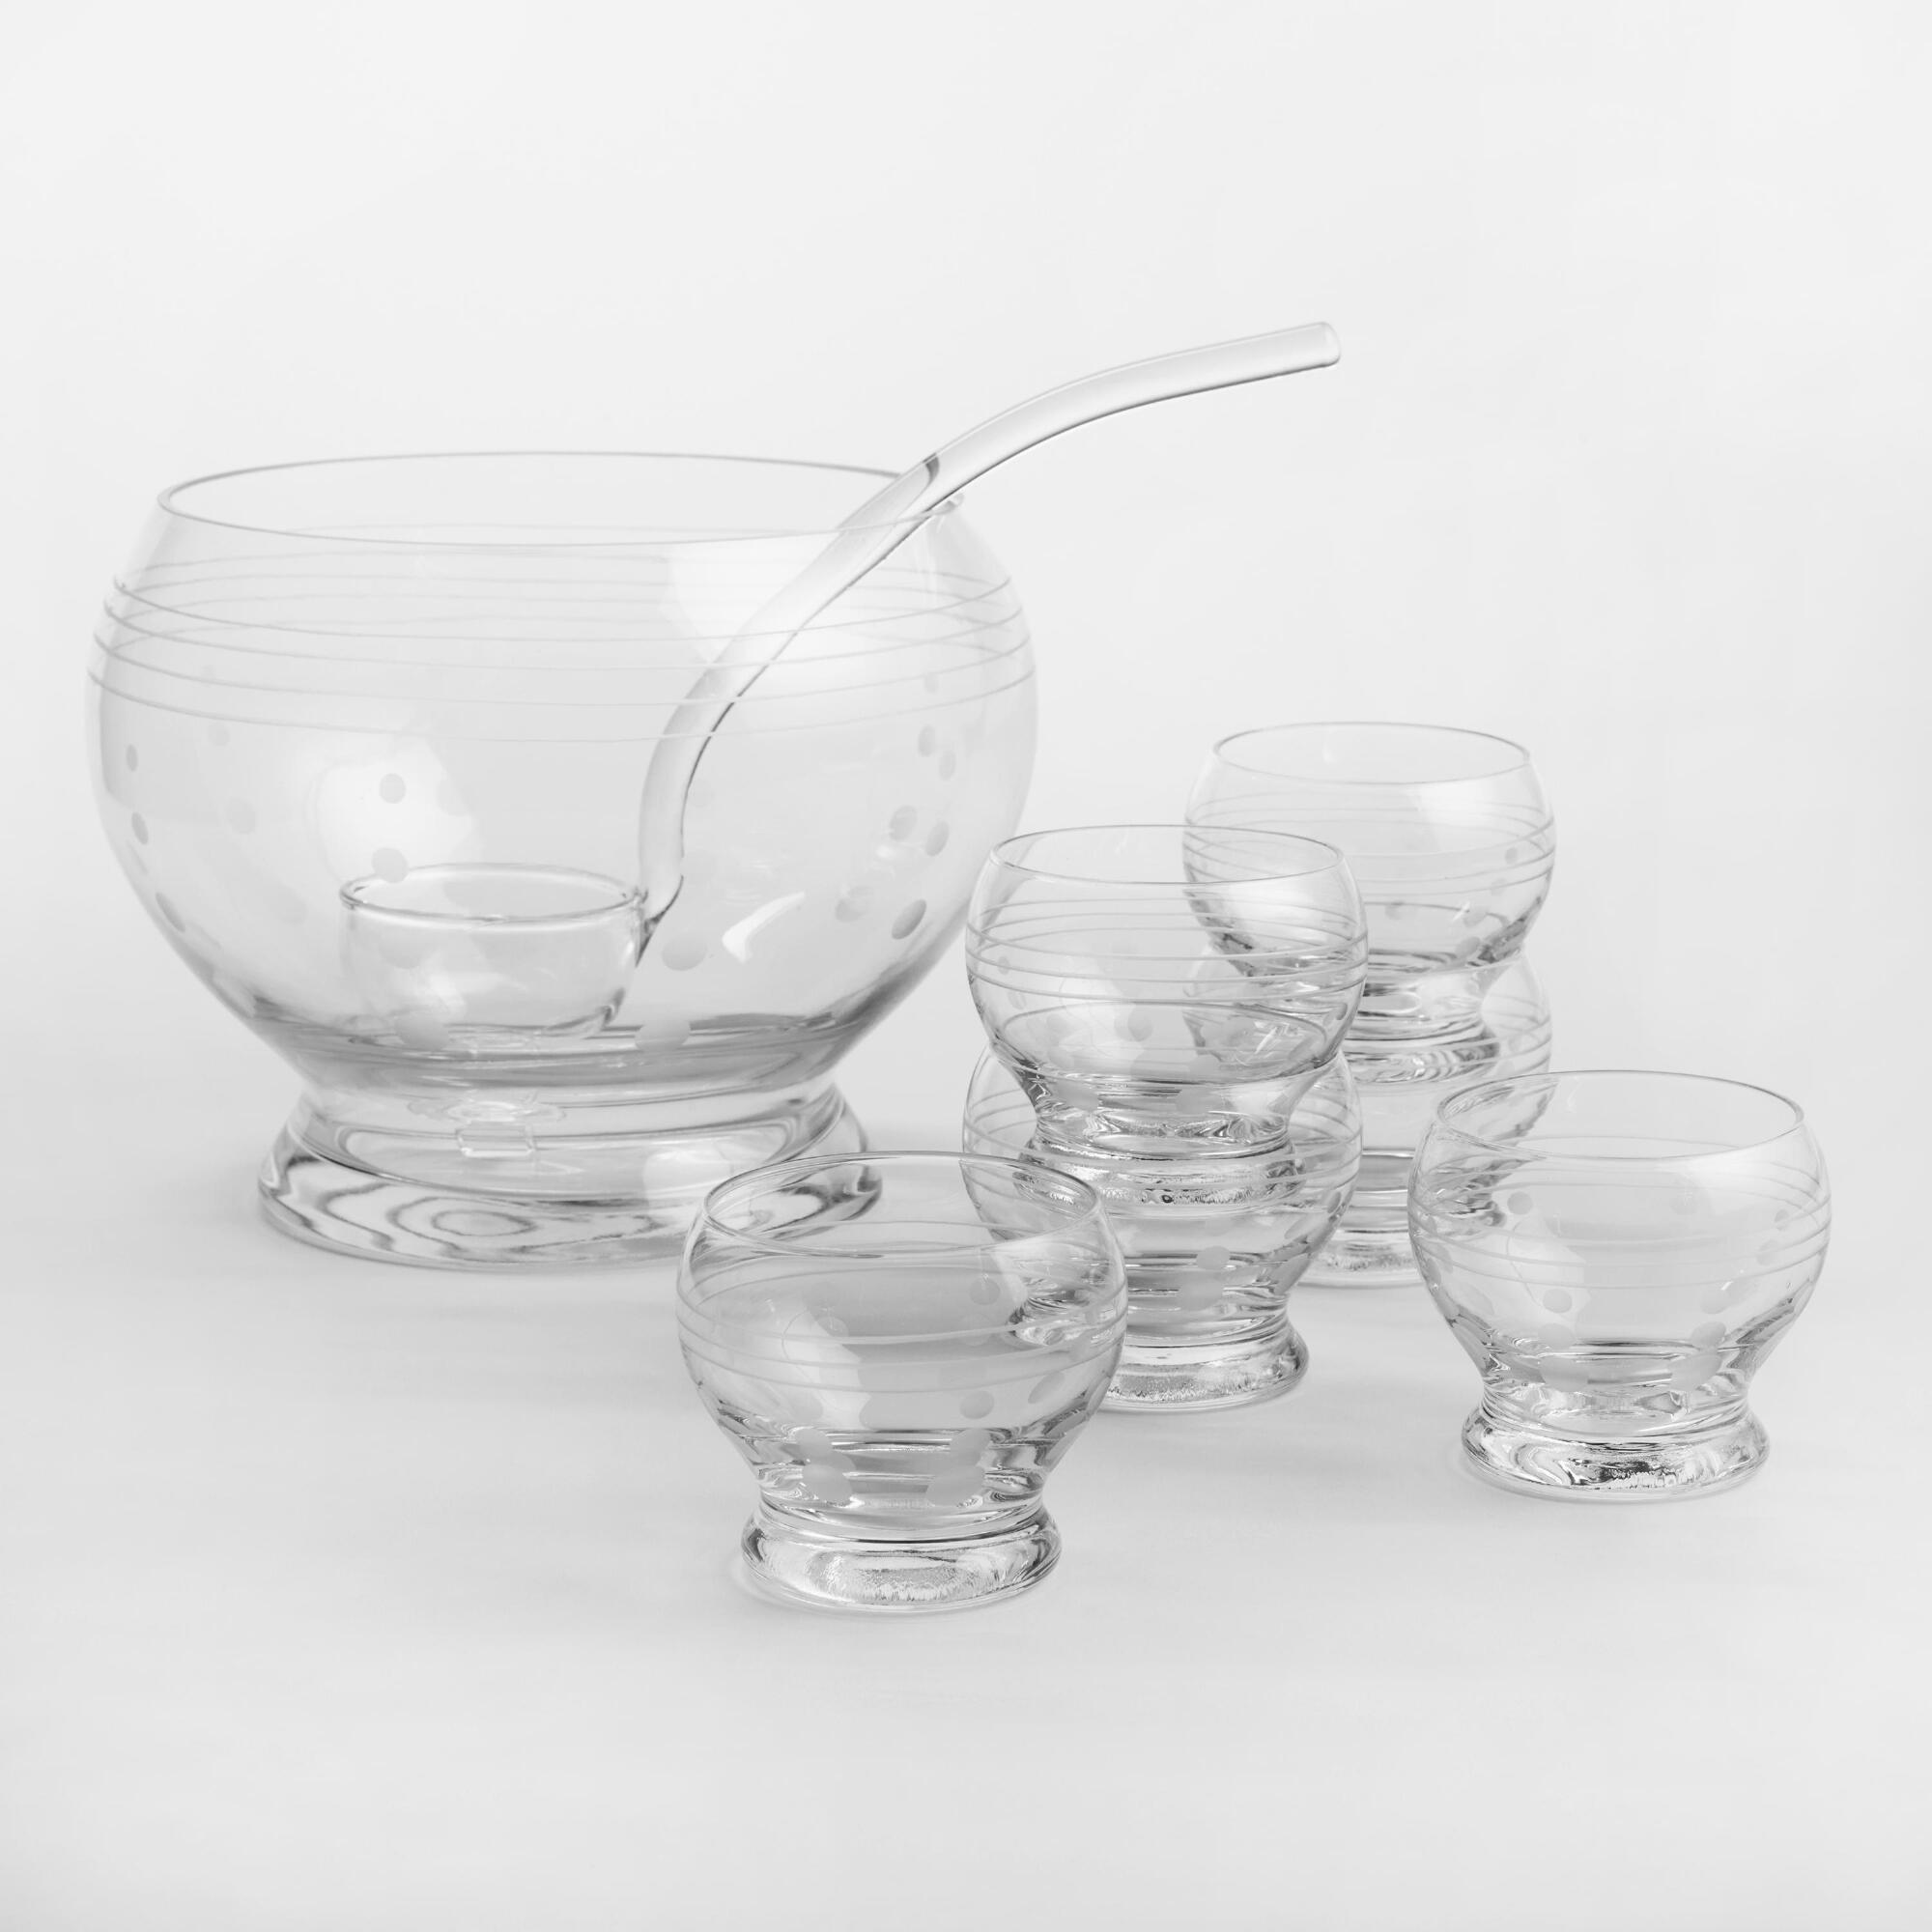 Etched Glass Punch Bowl Set, 8-Piece by World Market